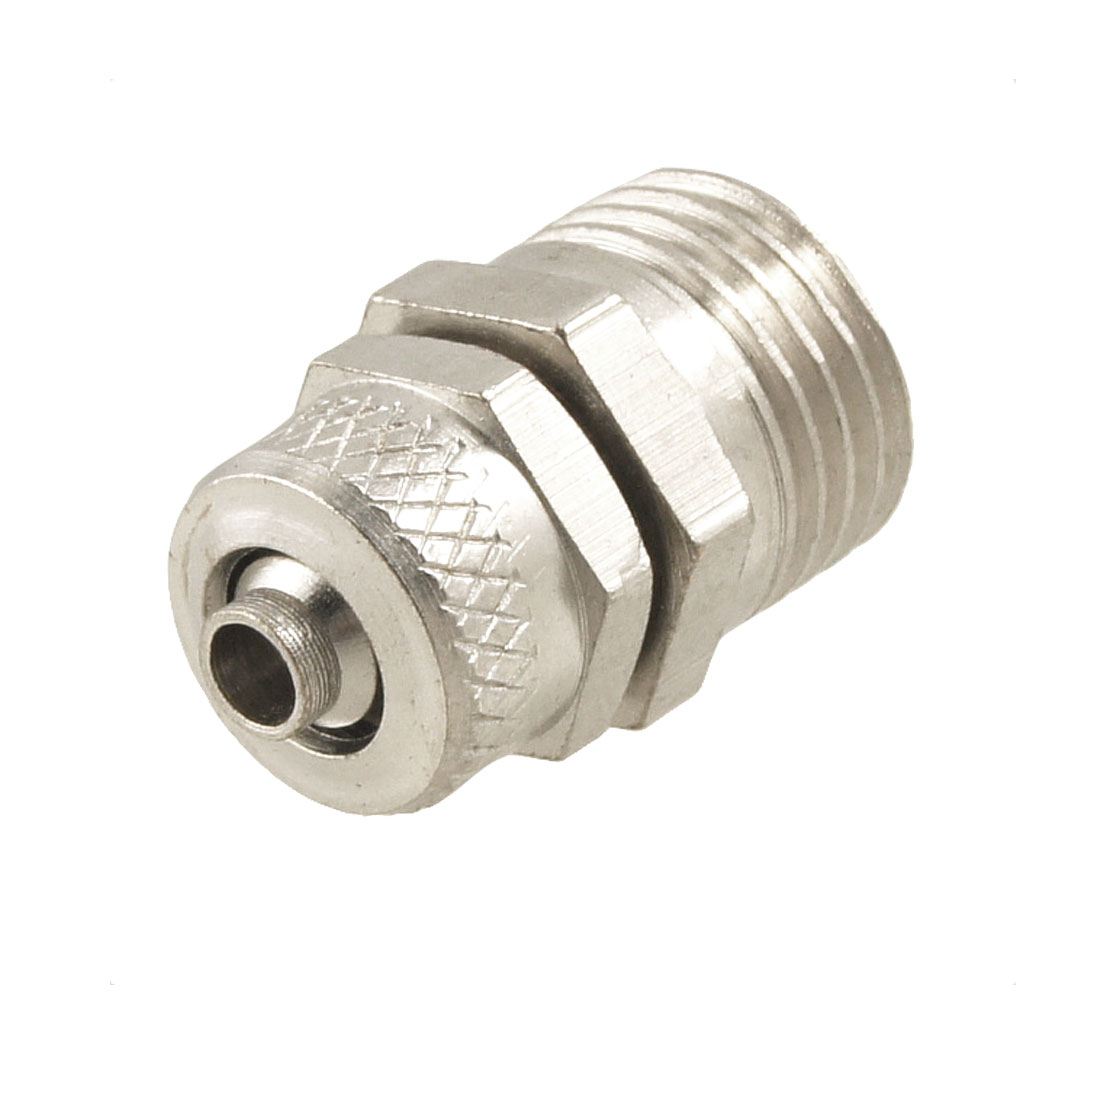 12.7mm Male Thread 4mm Pipe Air Pneumatic Quick Coupler Connector